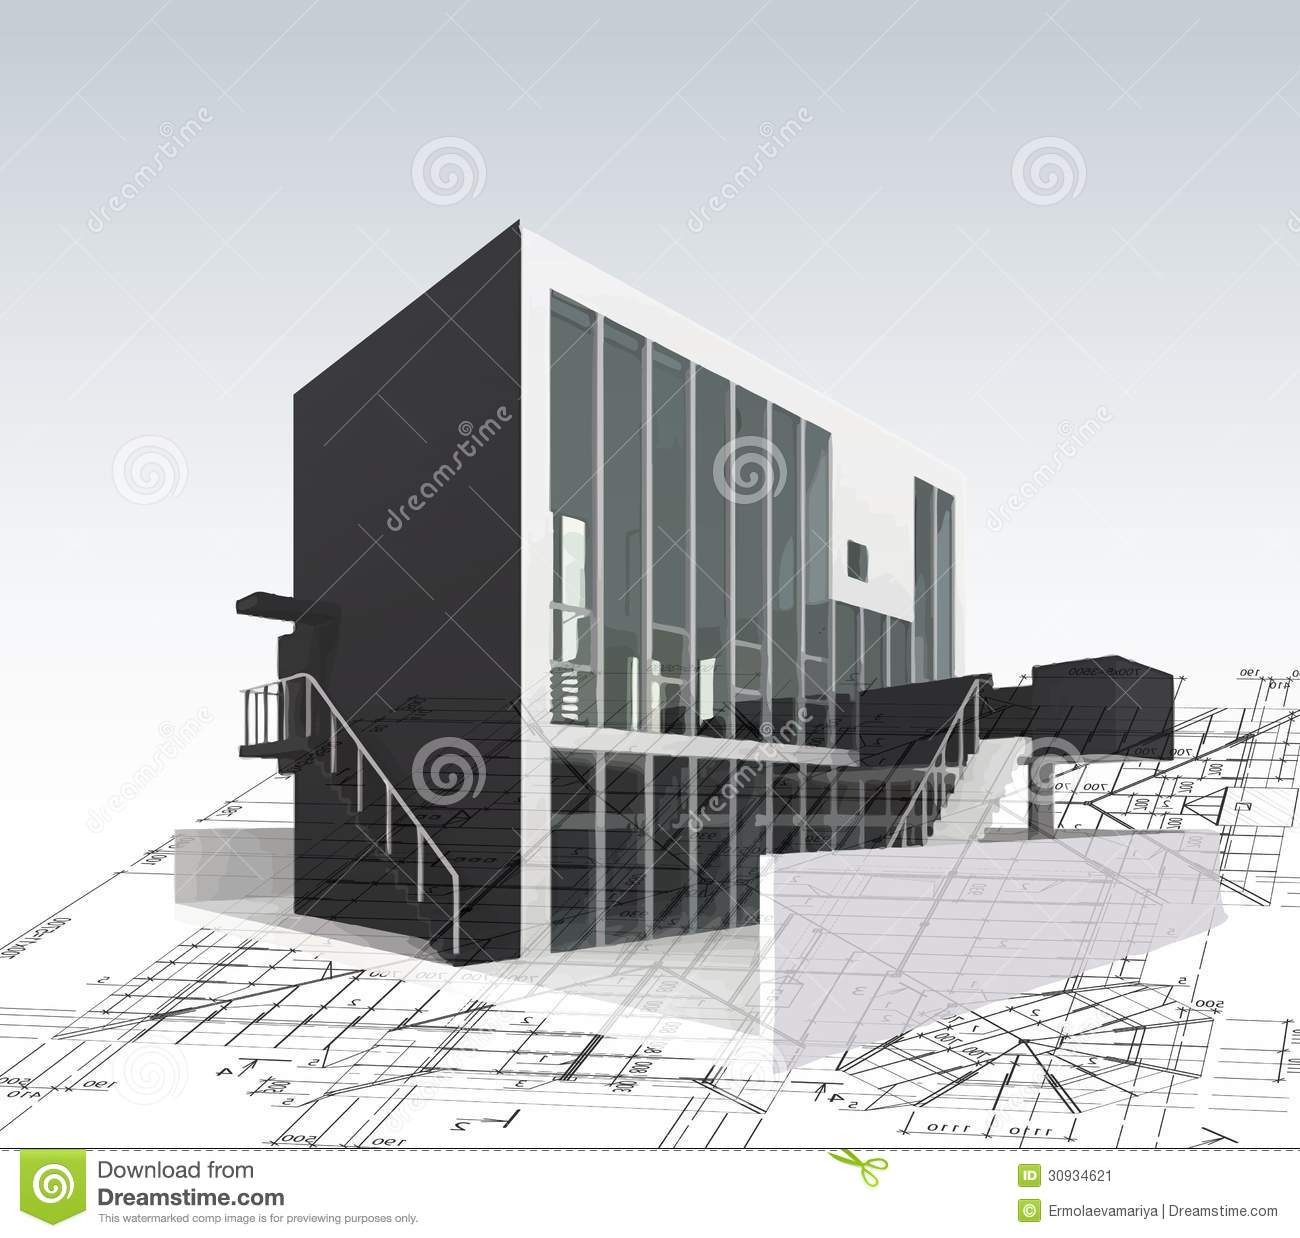 Picture Book Illustration Making An Architectural Model: Architecture Model House With Blueprints. Vector Stock